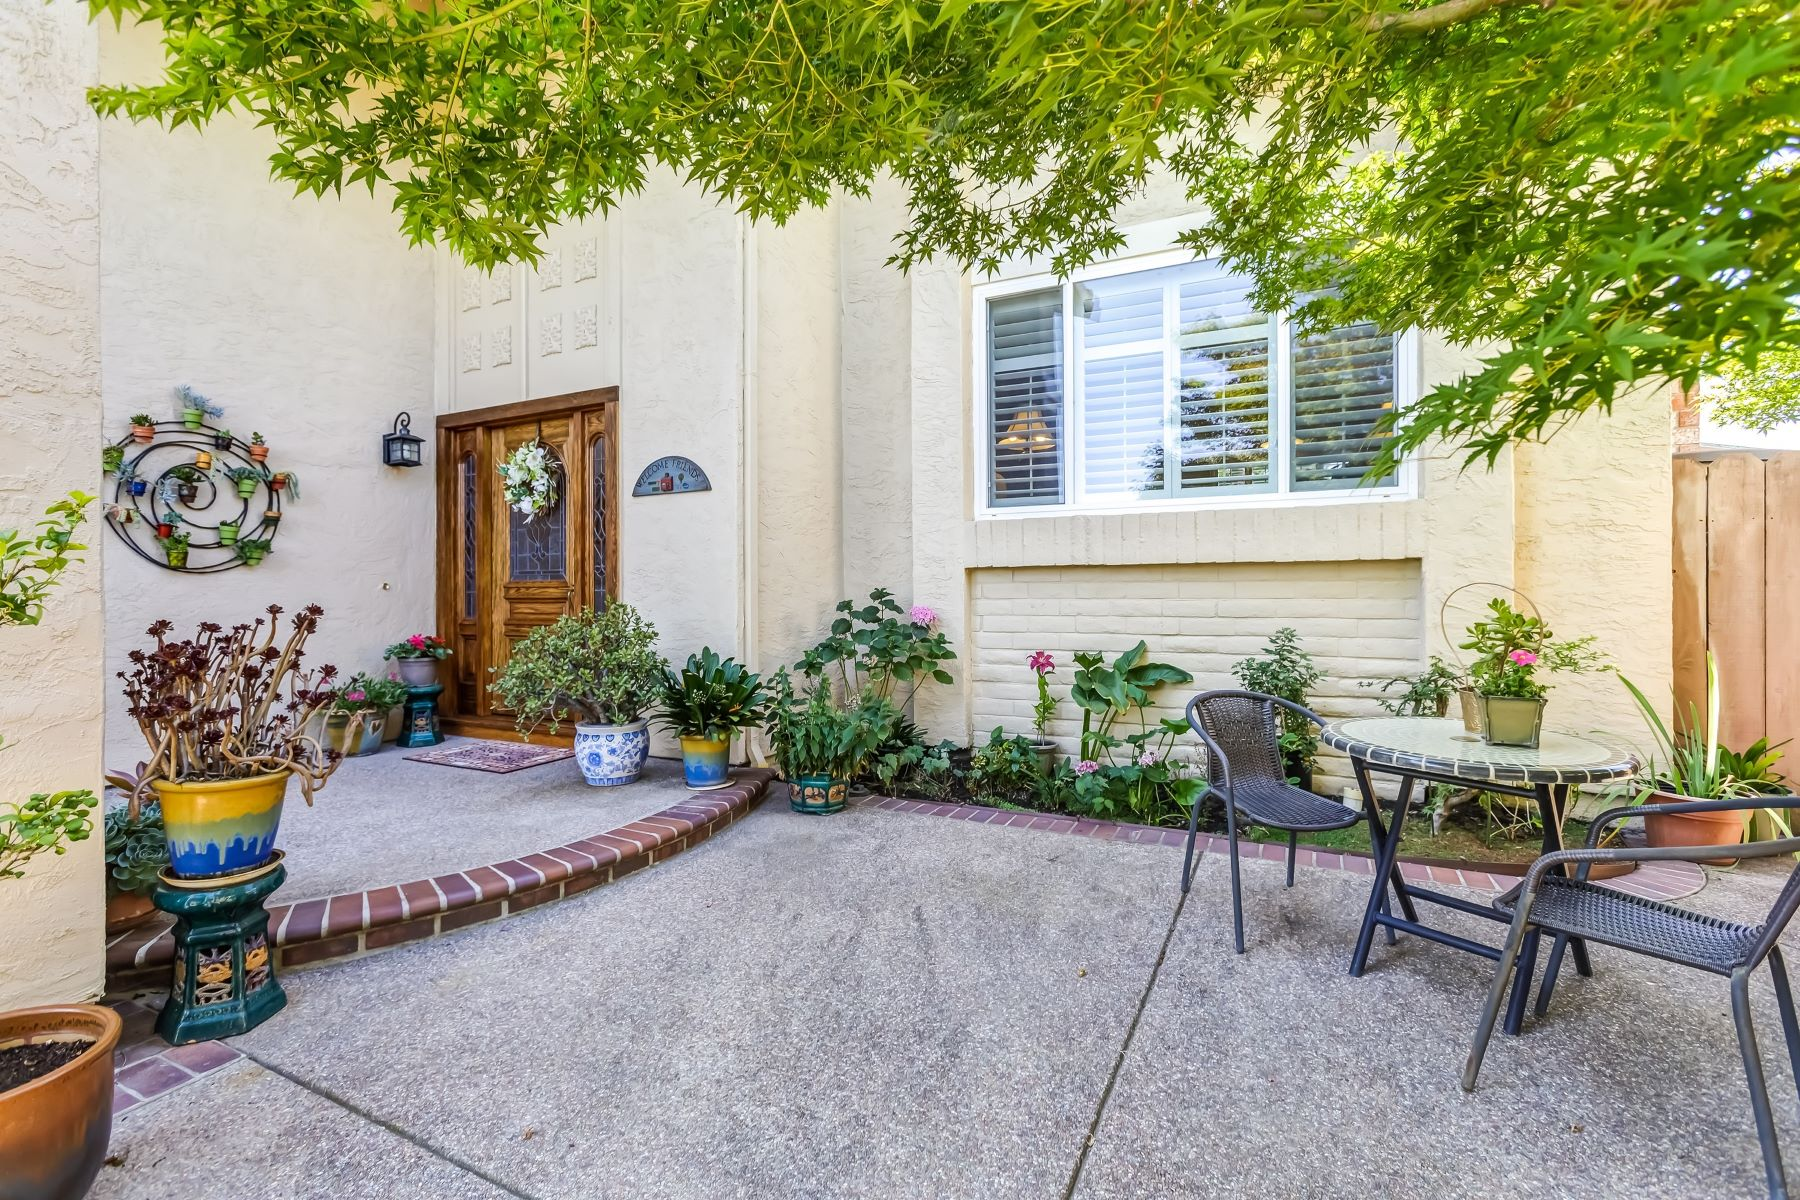 Additional photo for property listing at A Rare Find In Sunrise Place 168 Pebble Place San Ramon, California 94583 United States